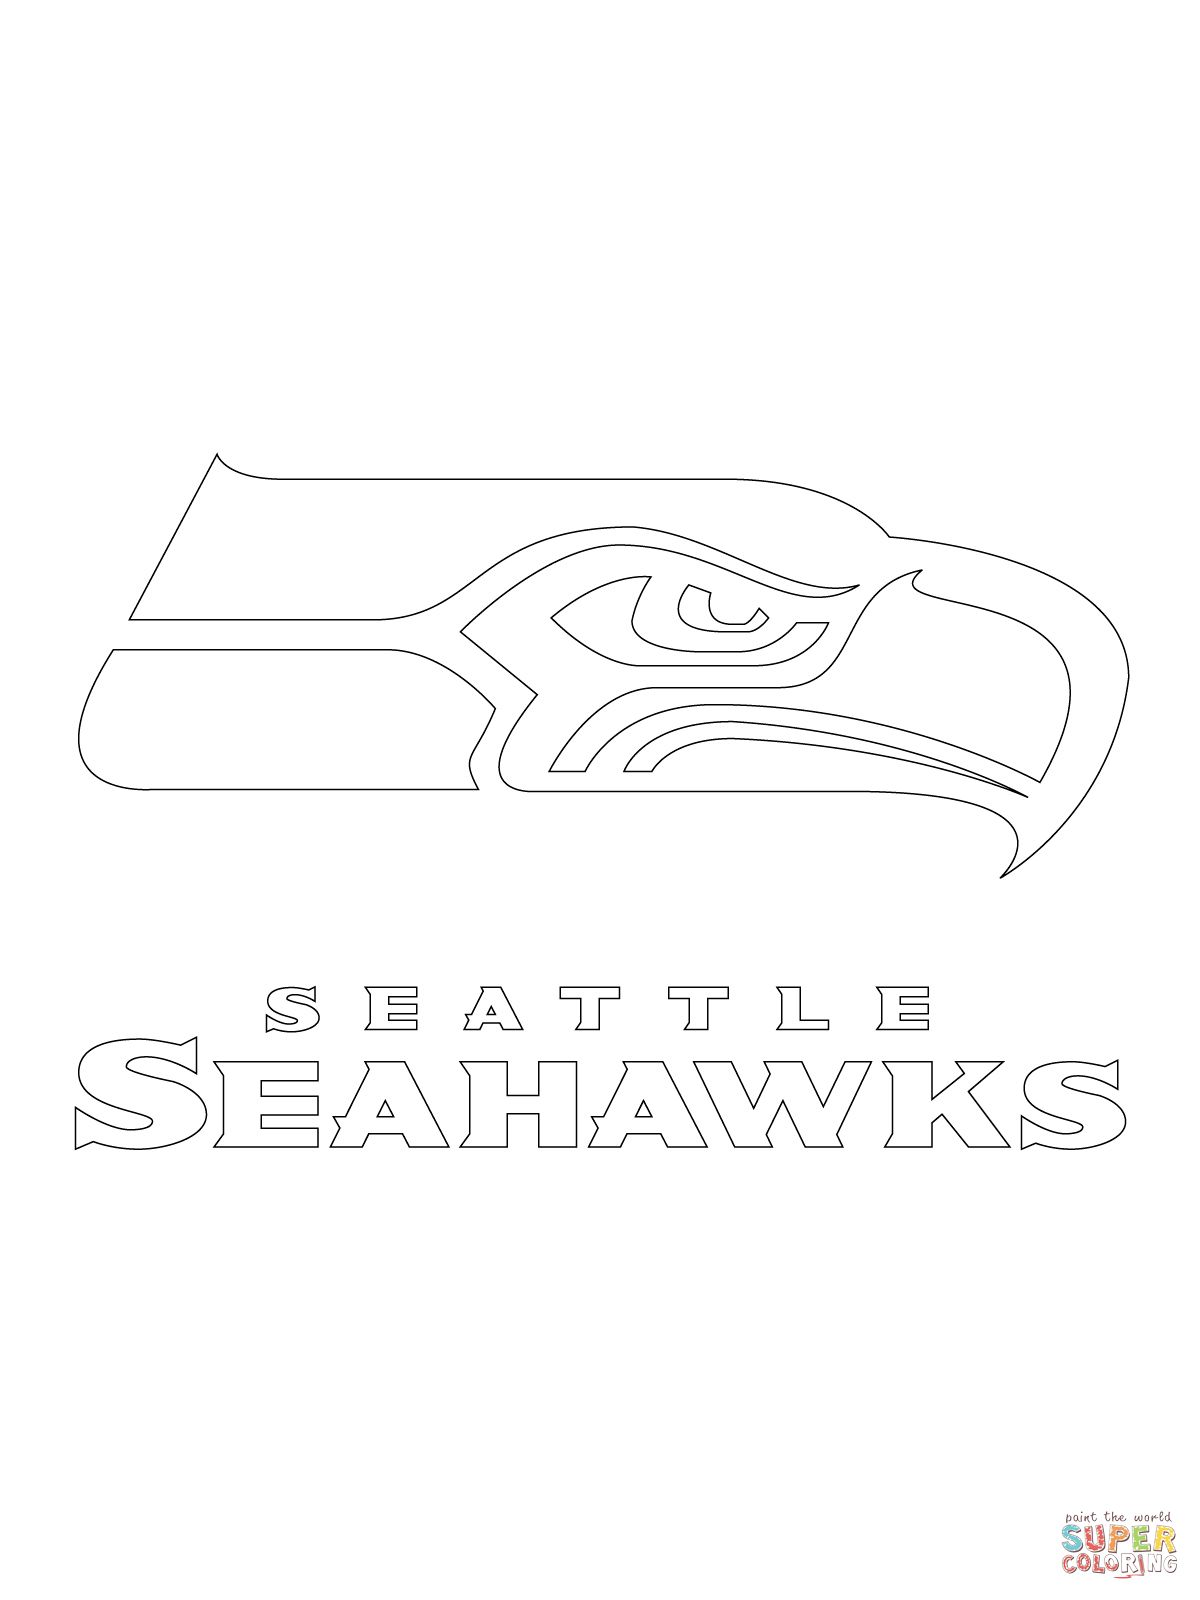 Seahawks coloring pages to print